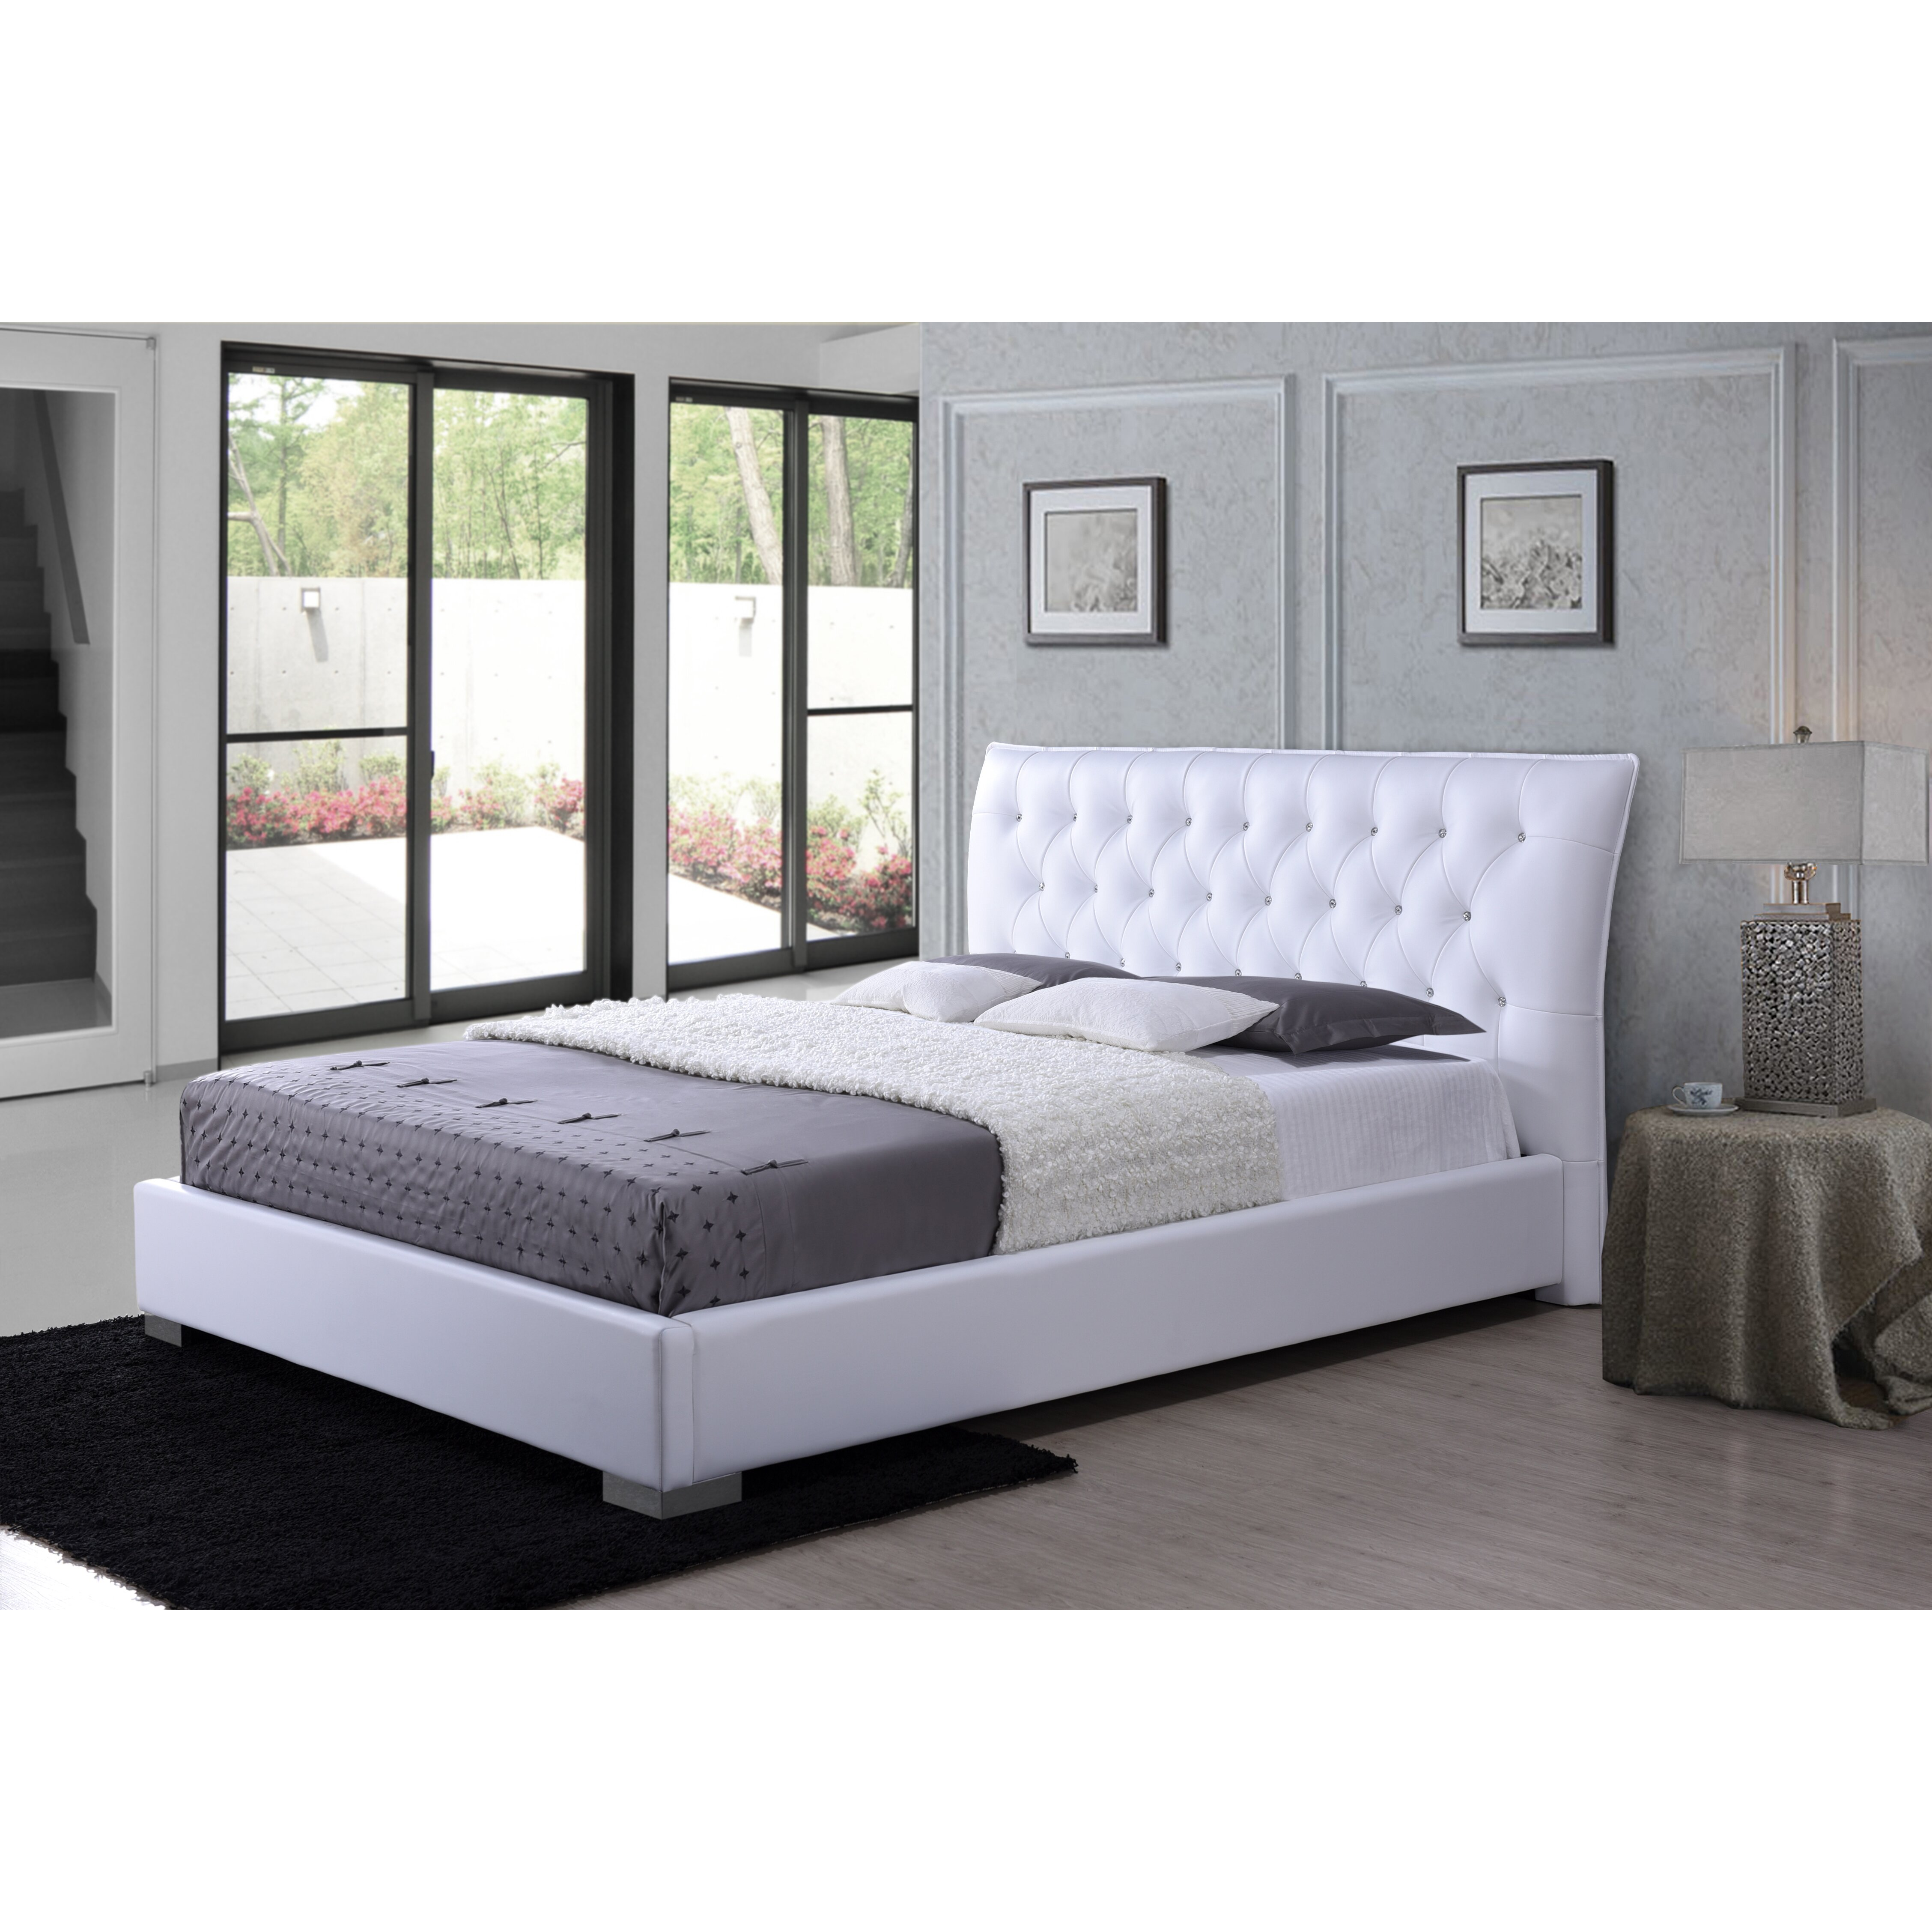 wholesale interiors baxton studio upholstered platform bed reviews wayfair. Black Bedroom Furniture Sets. Home Design Ideas